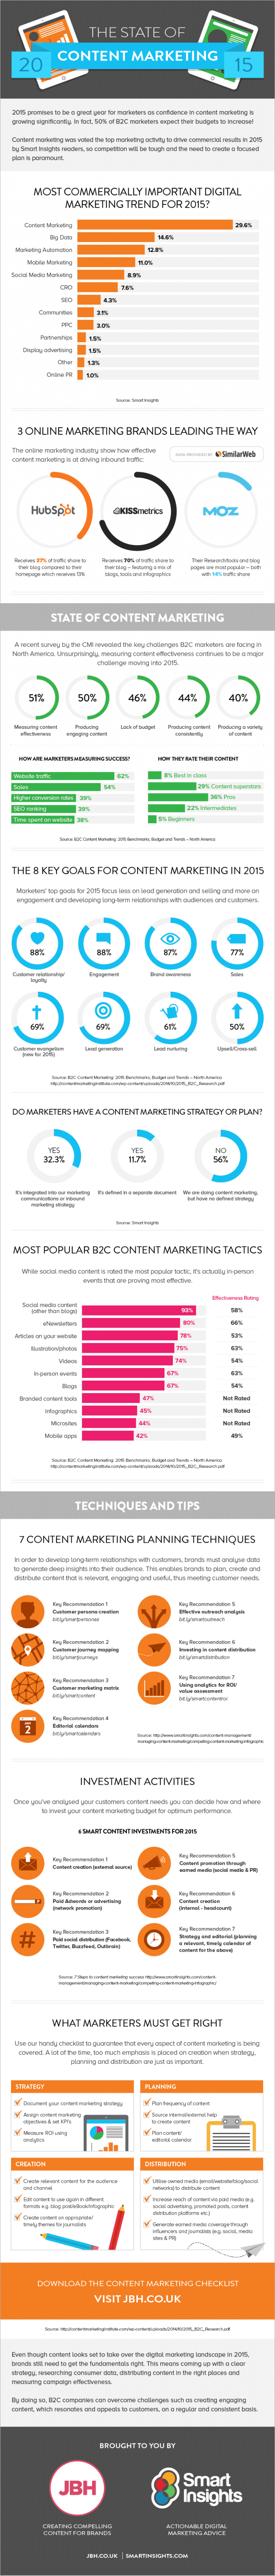 State-of-Content-Marketing-2015